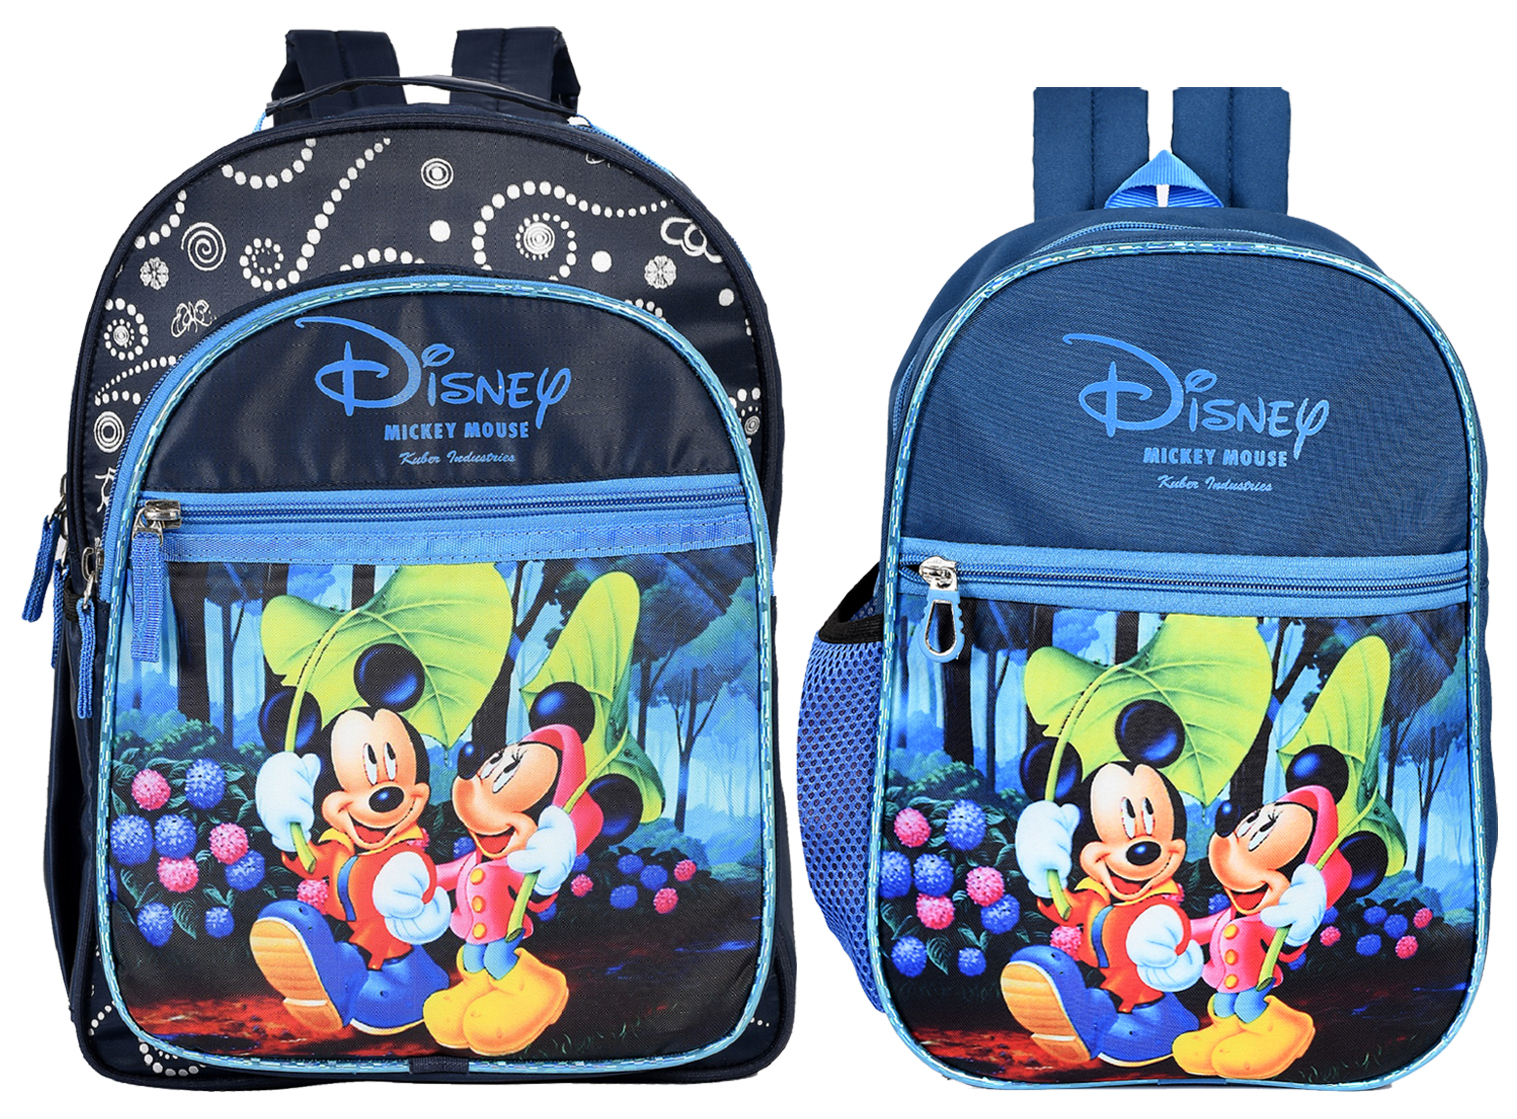 Kuber Industries  Disney Mickey Minnie Mouse 13 & 15 inch Polyster School Bag/Backpack For Kids, Blue, Pack of 2 (Small & Medium)-DISNEY008